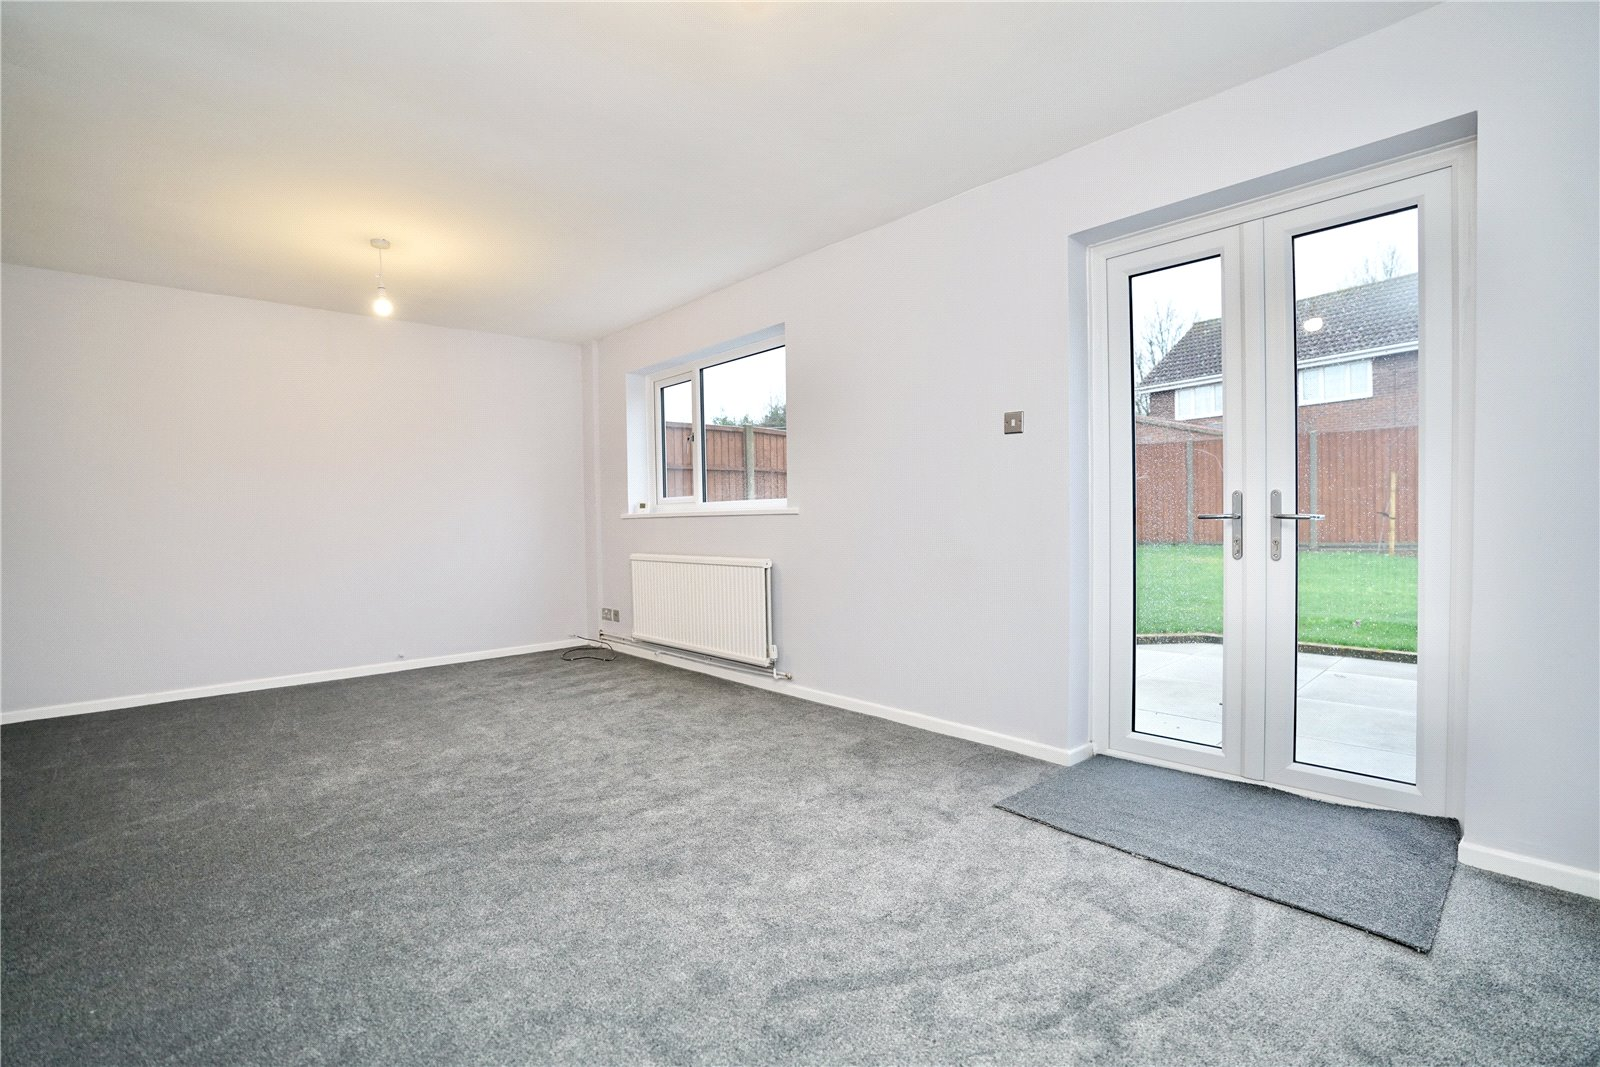 4 bed house for sale in Eaton Socon 8